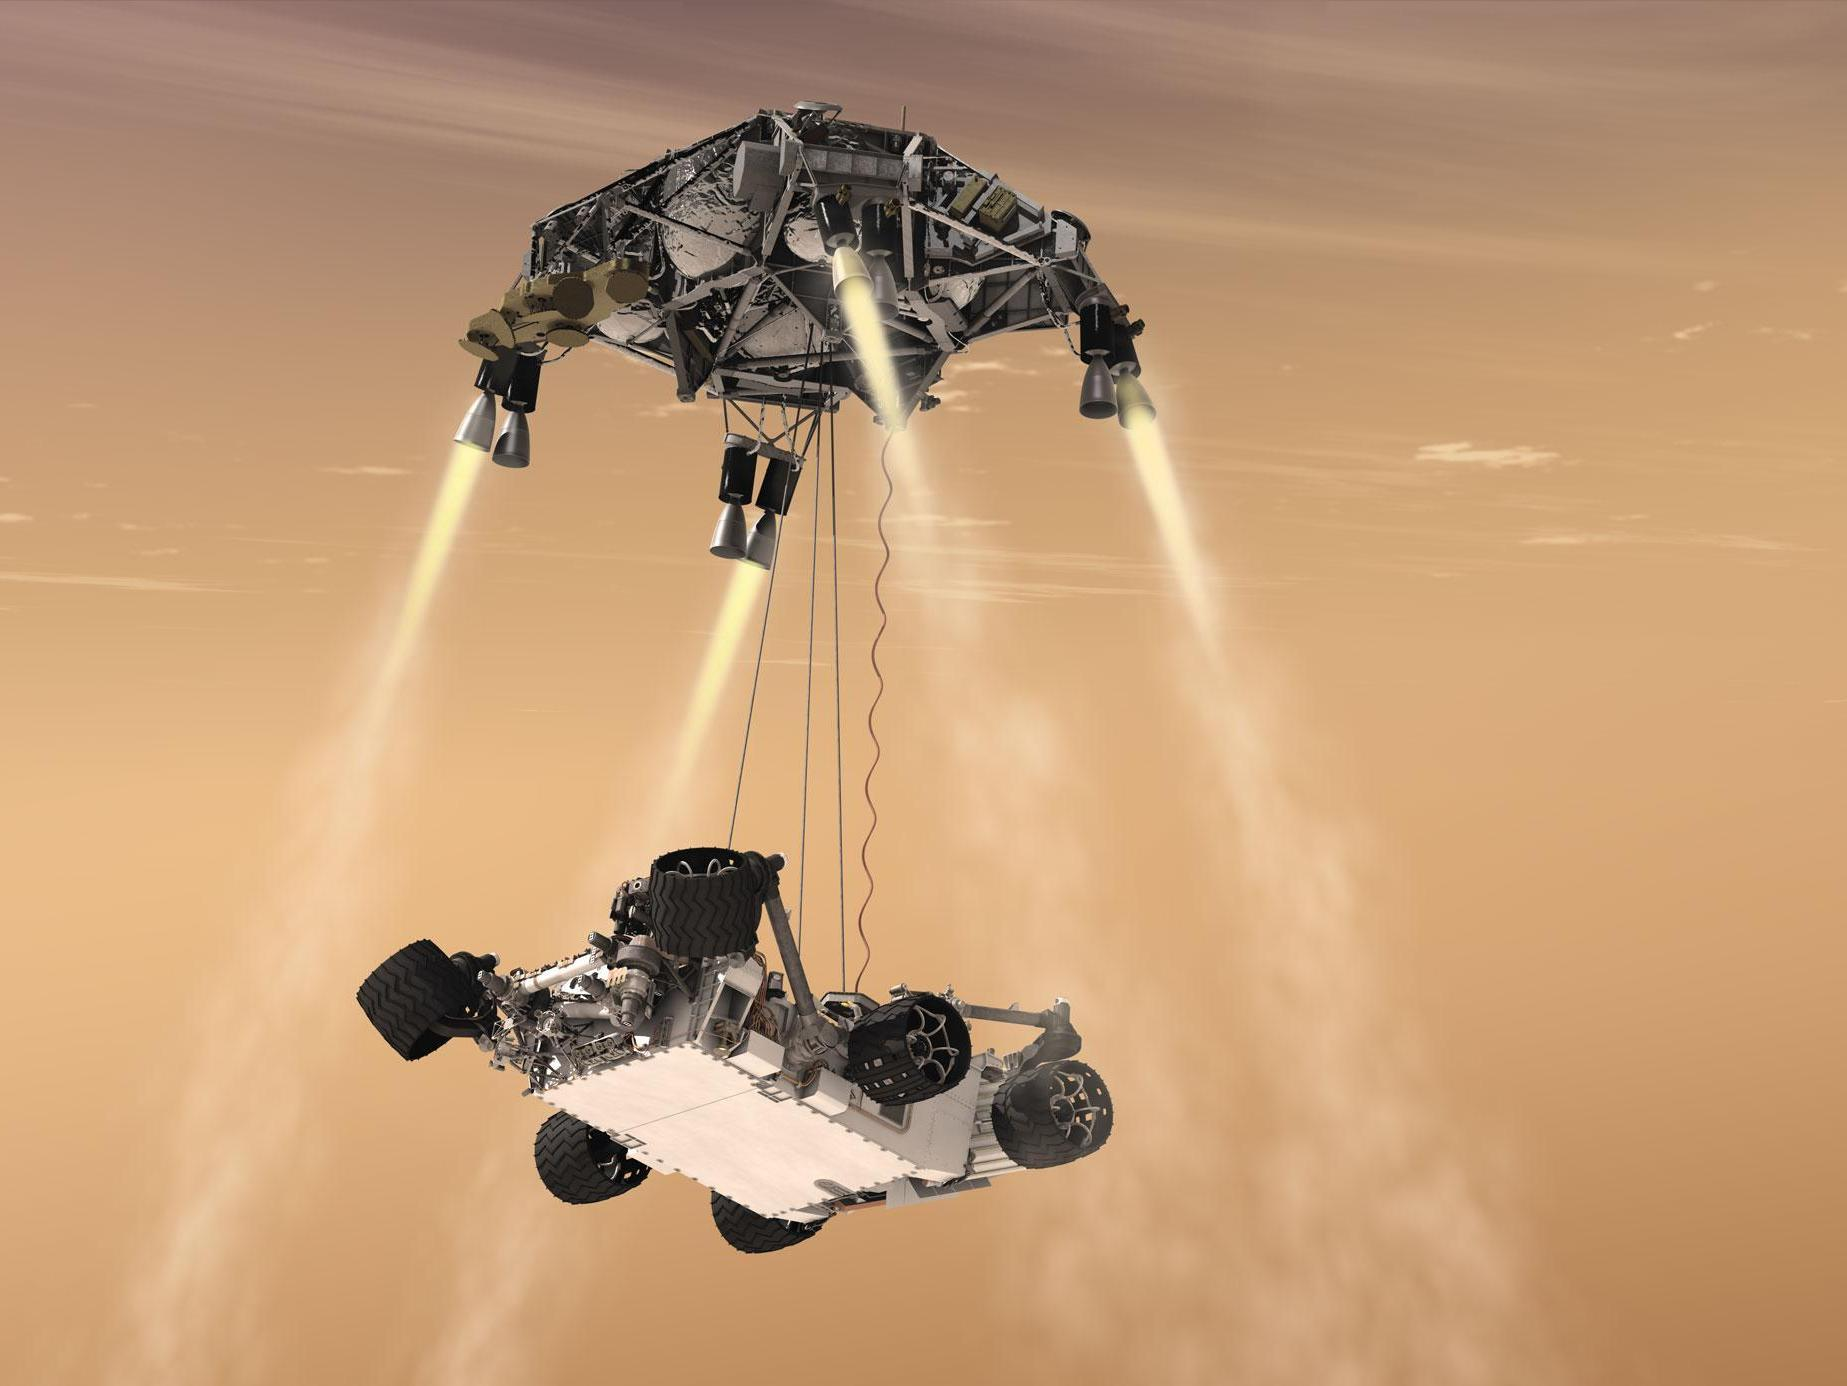 An artist's rendering shows a rocket-powered descent stage lowering the one-ton Curiosity rover to the Mars surface